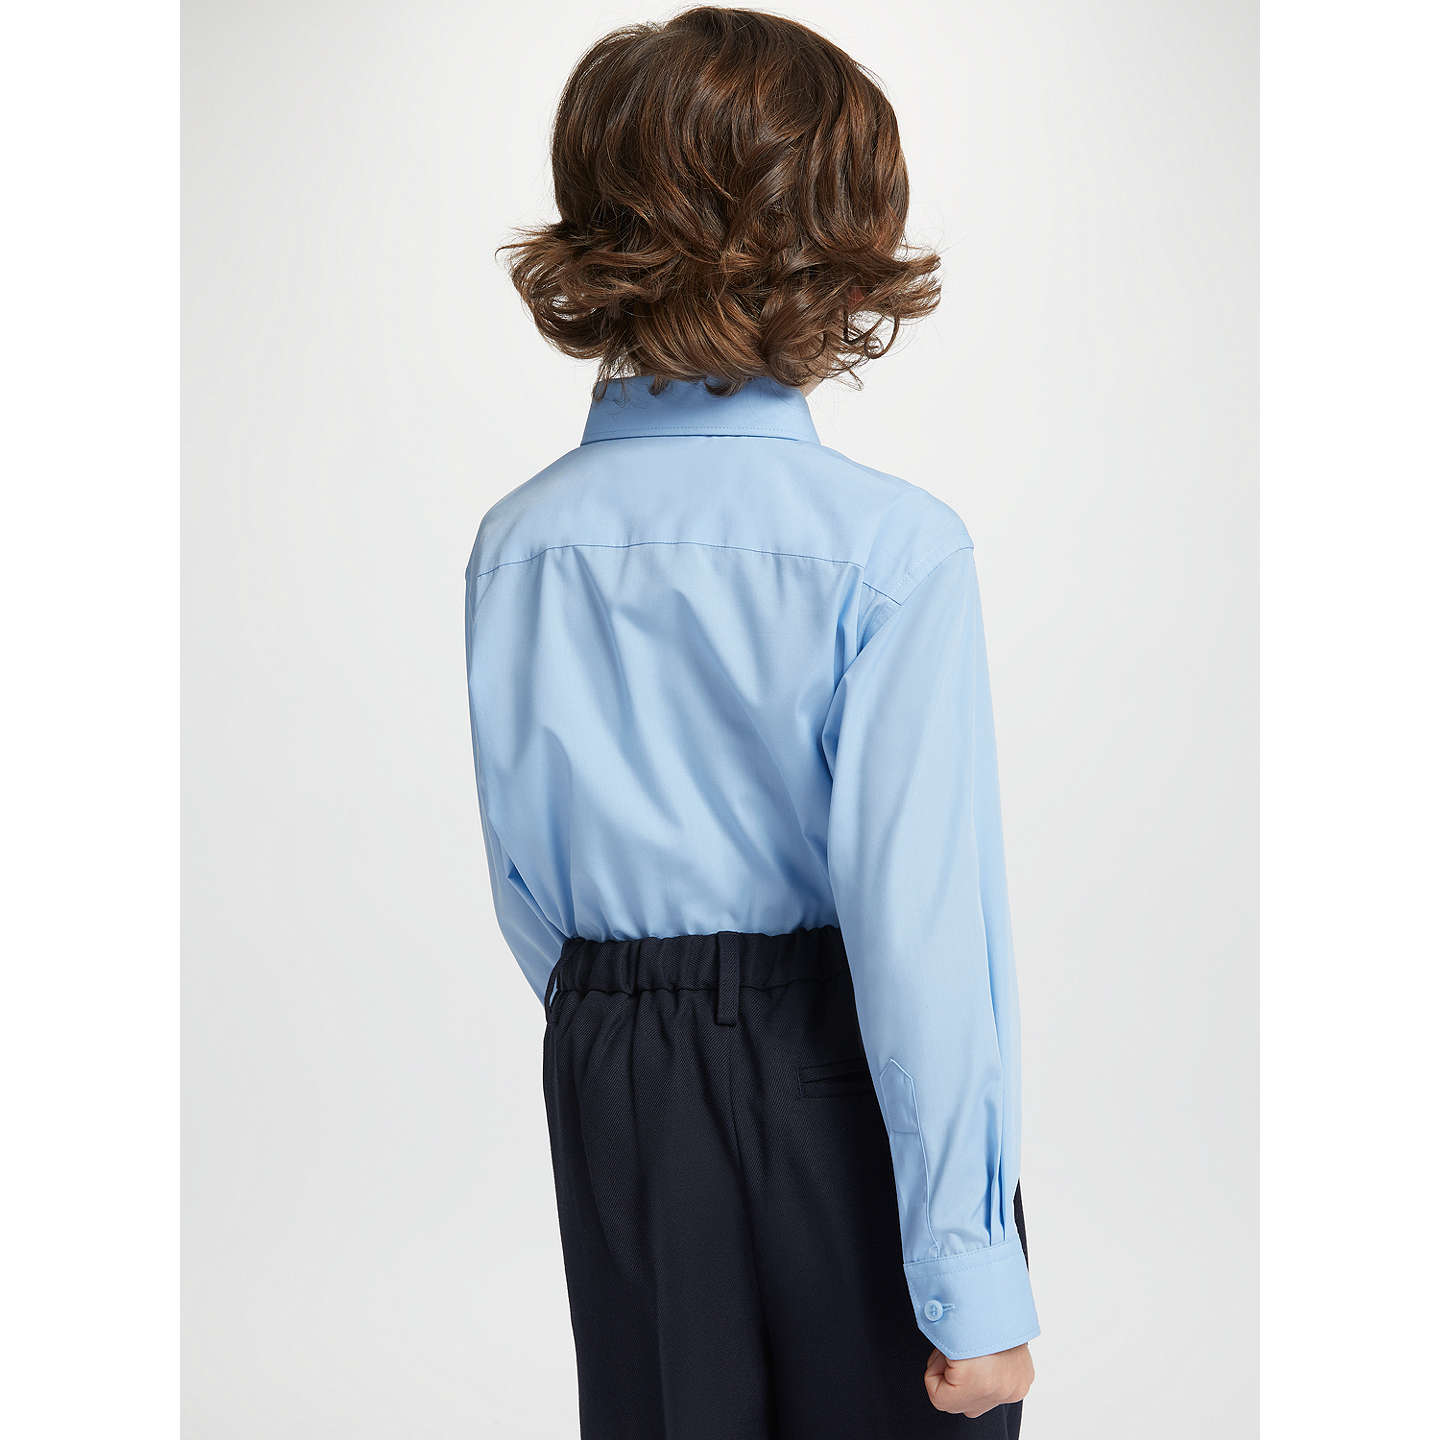 BuyJohn Lewis Easy Care Long Sleeve School Shirt, Pack of 2, Blue, 3 years Online at johnlewis.com